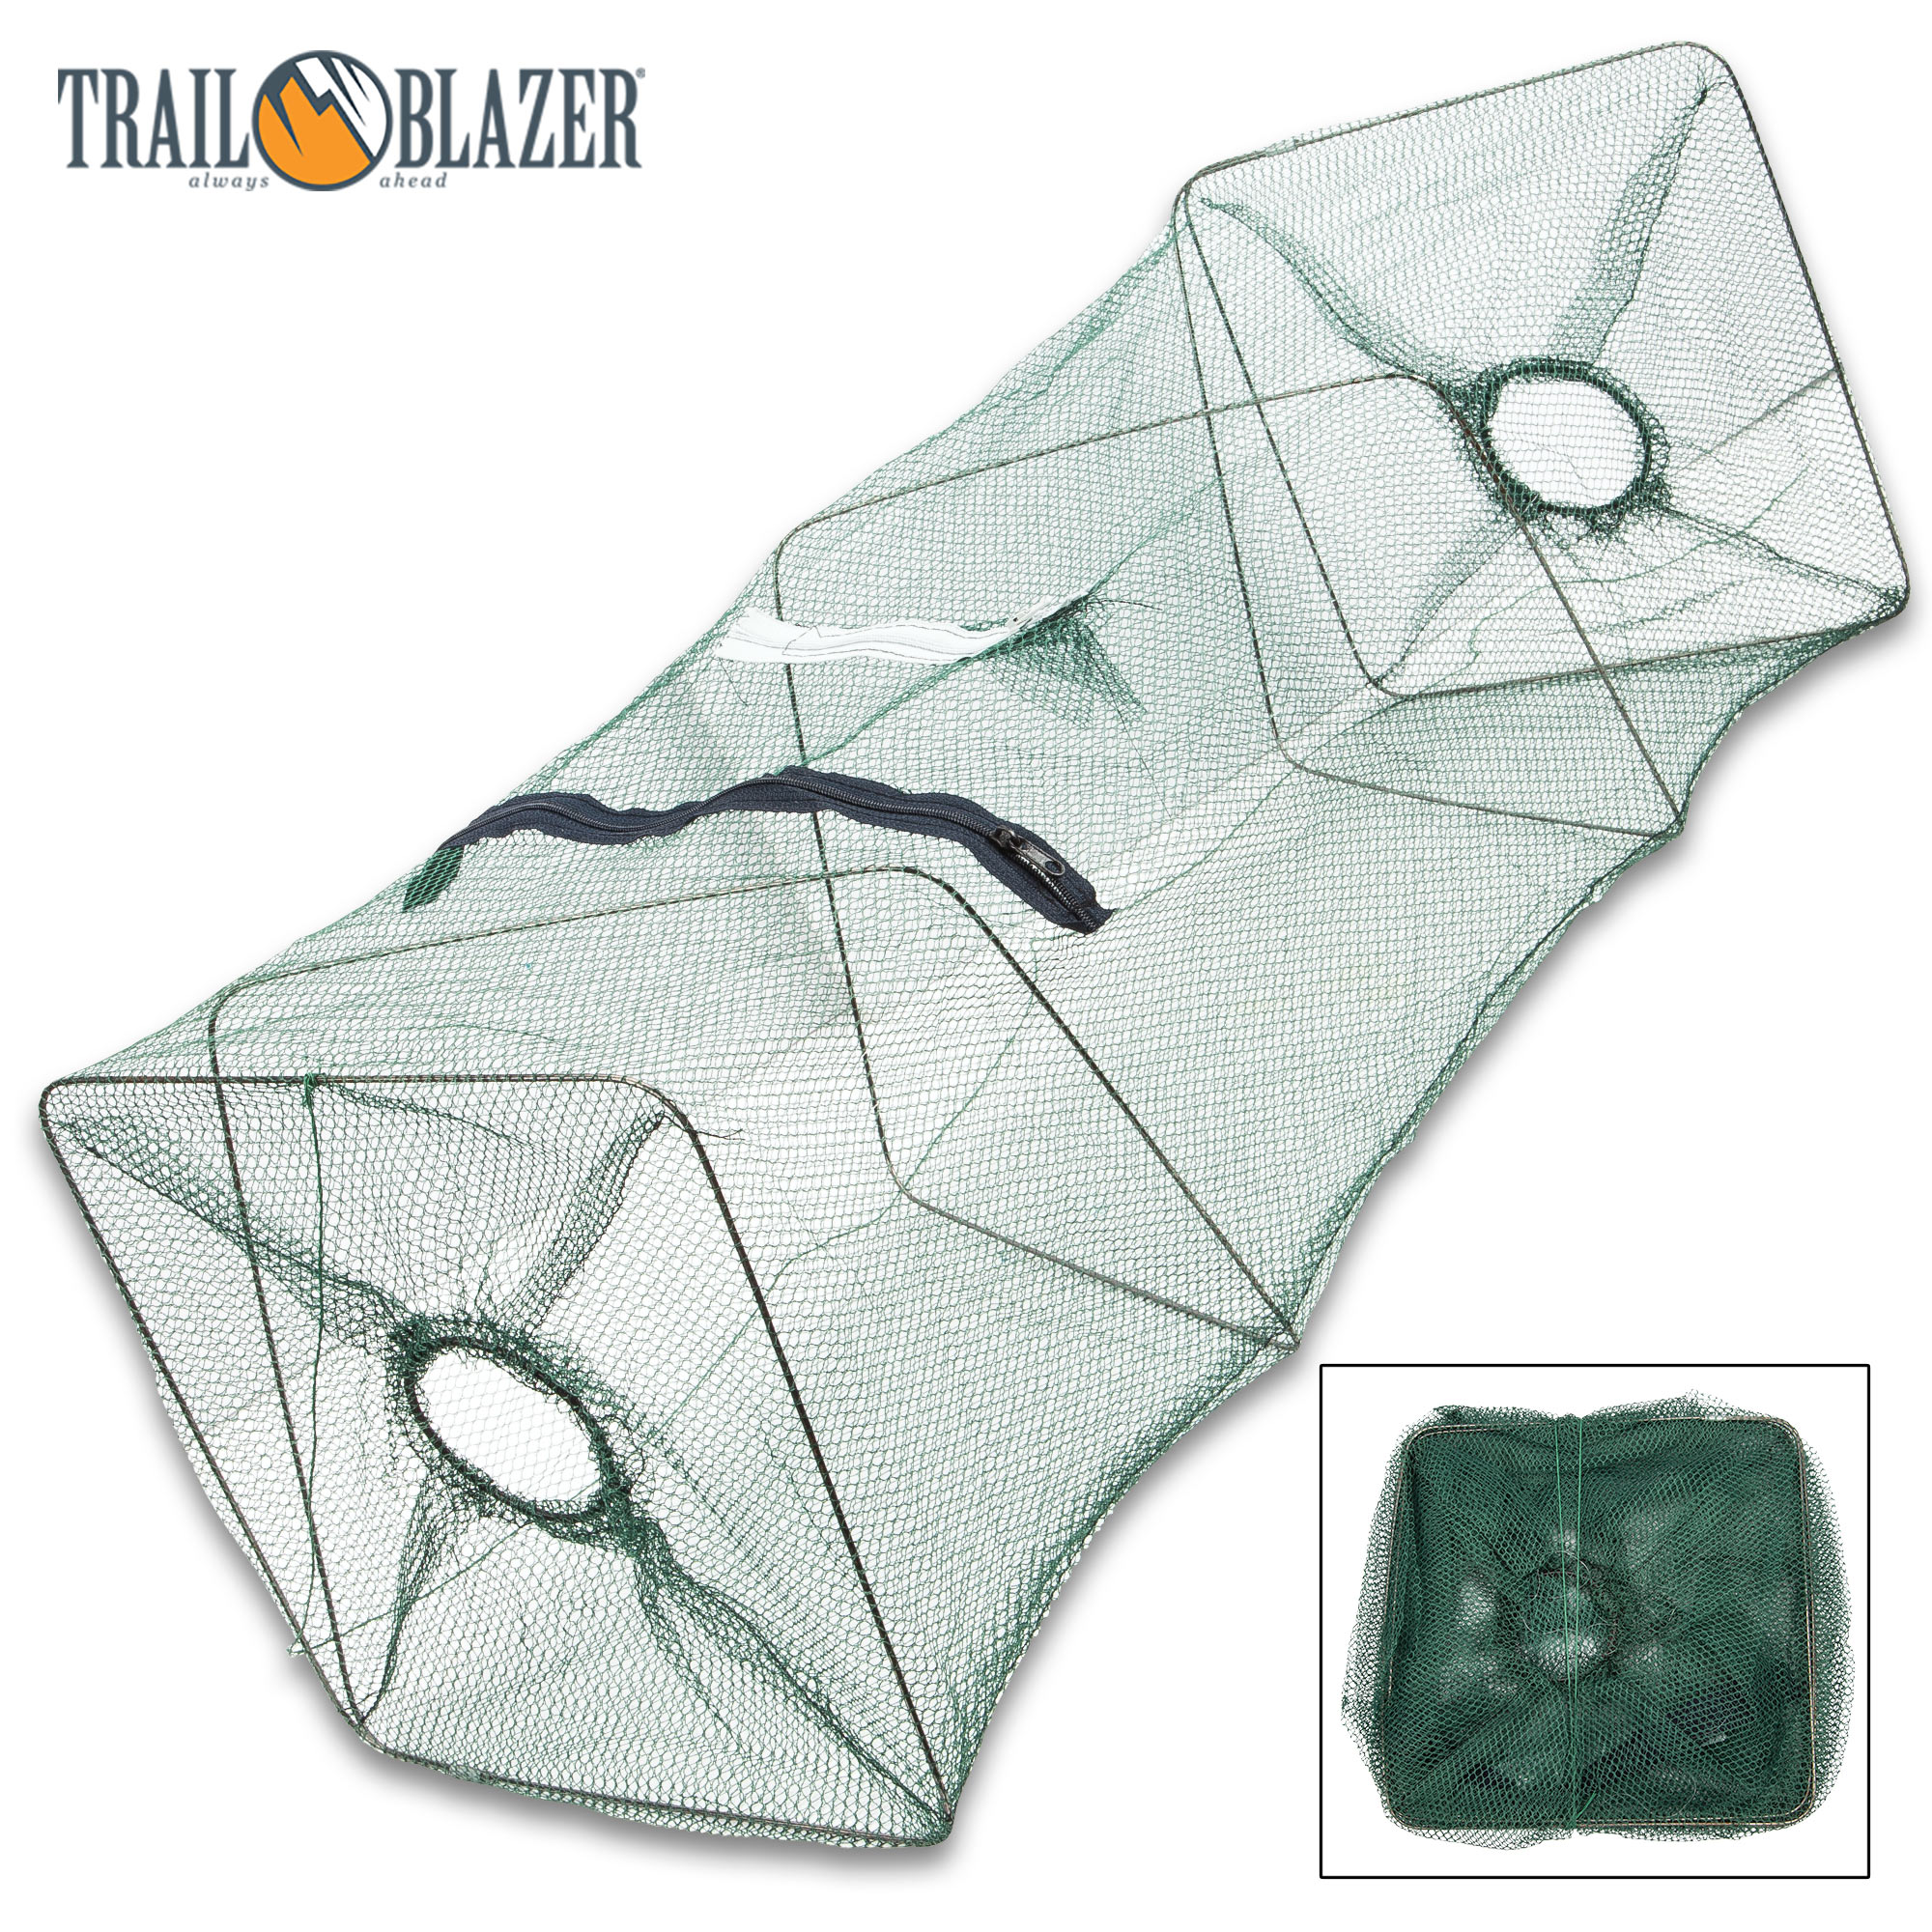 Trailblazer Collapsible Live Fishing Bait Trap - Large